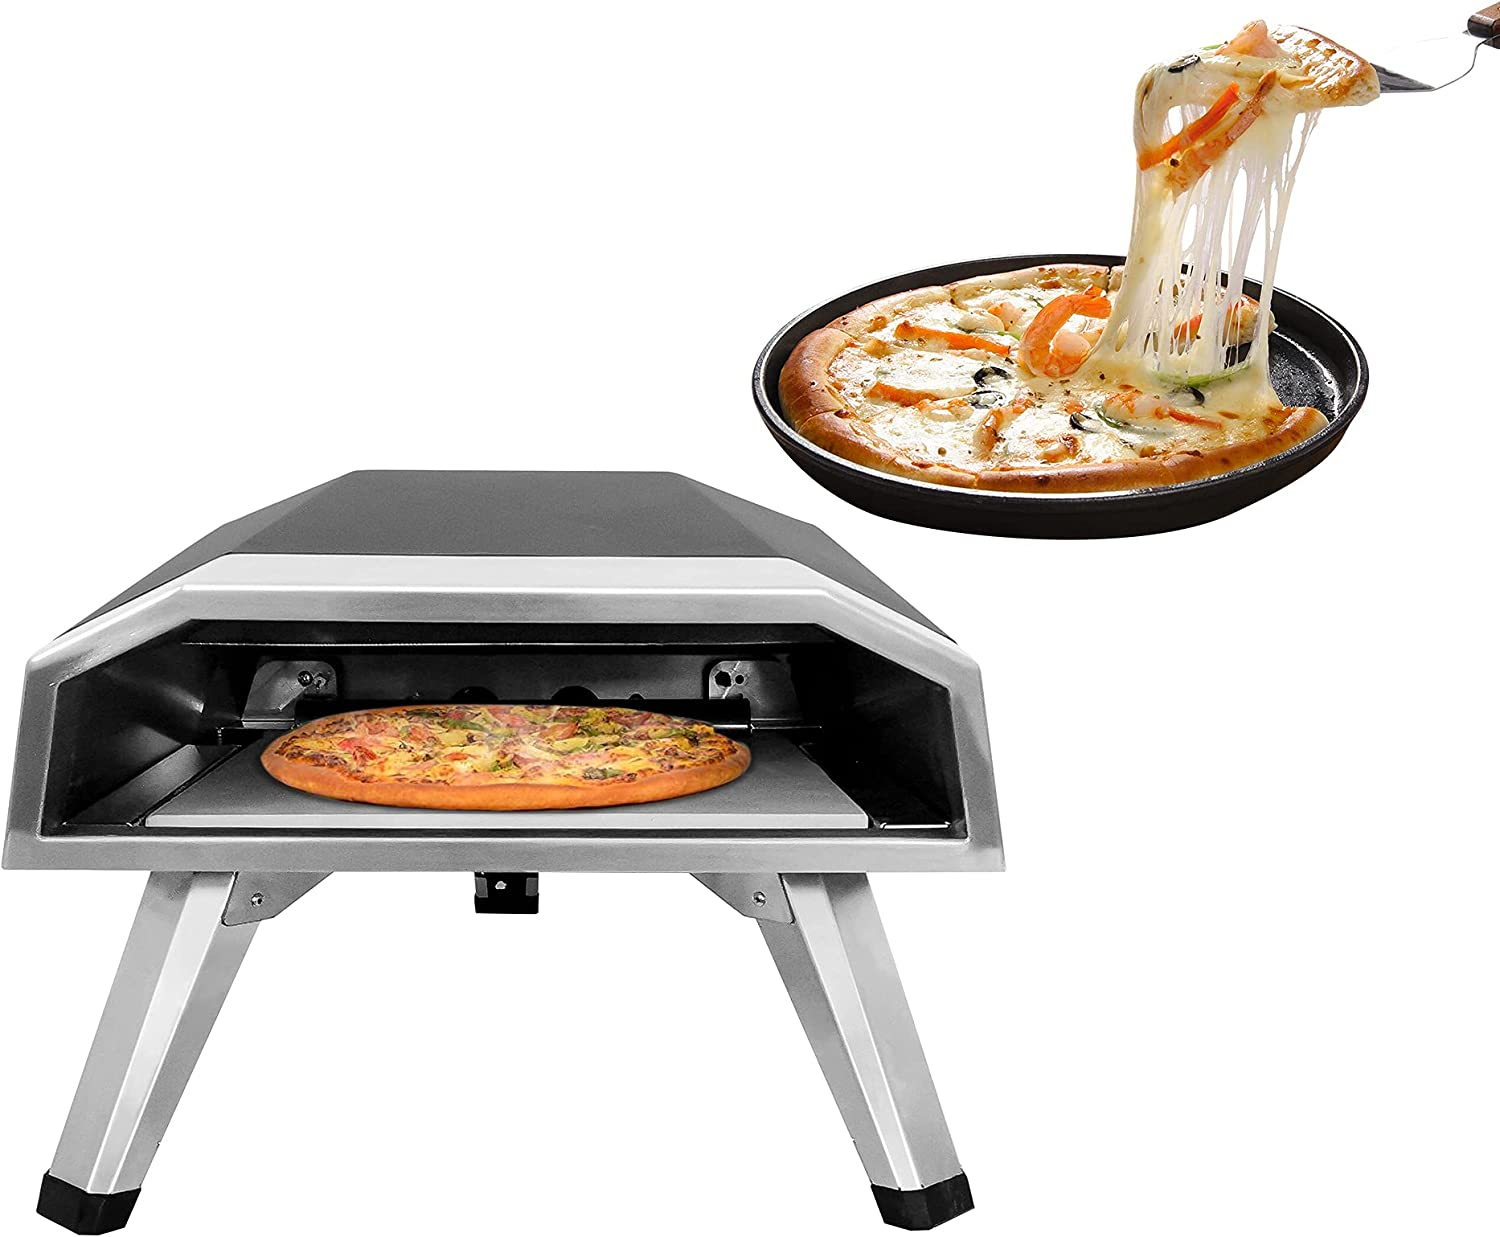 Outdoor Pizza Oven,Portable Gas Oven Stainless Steel Pizza Toaster with 12